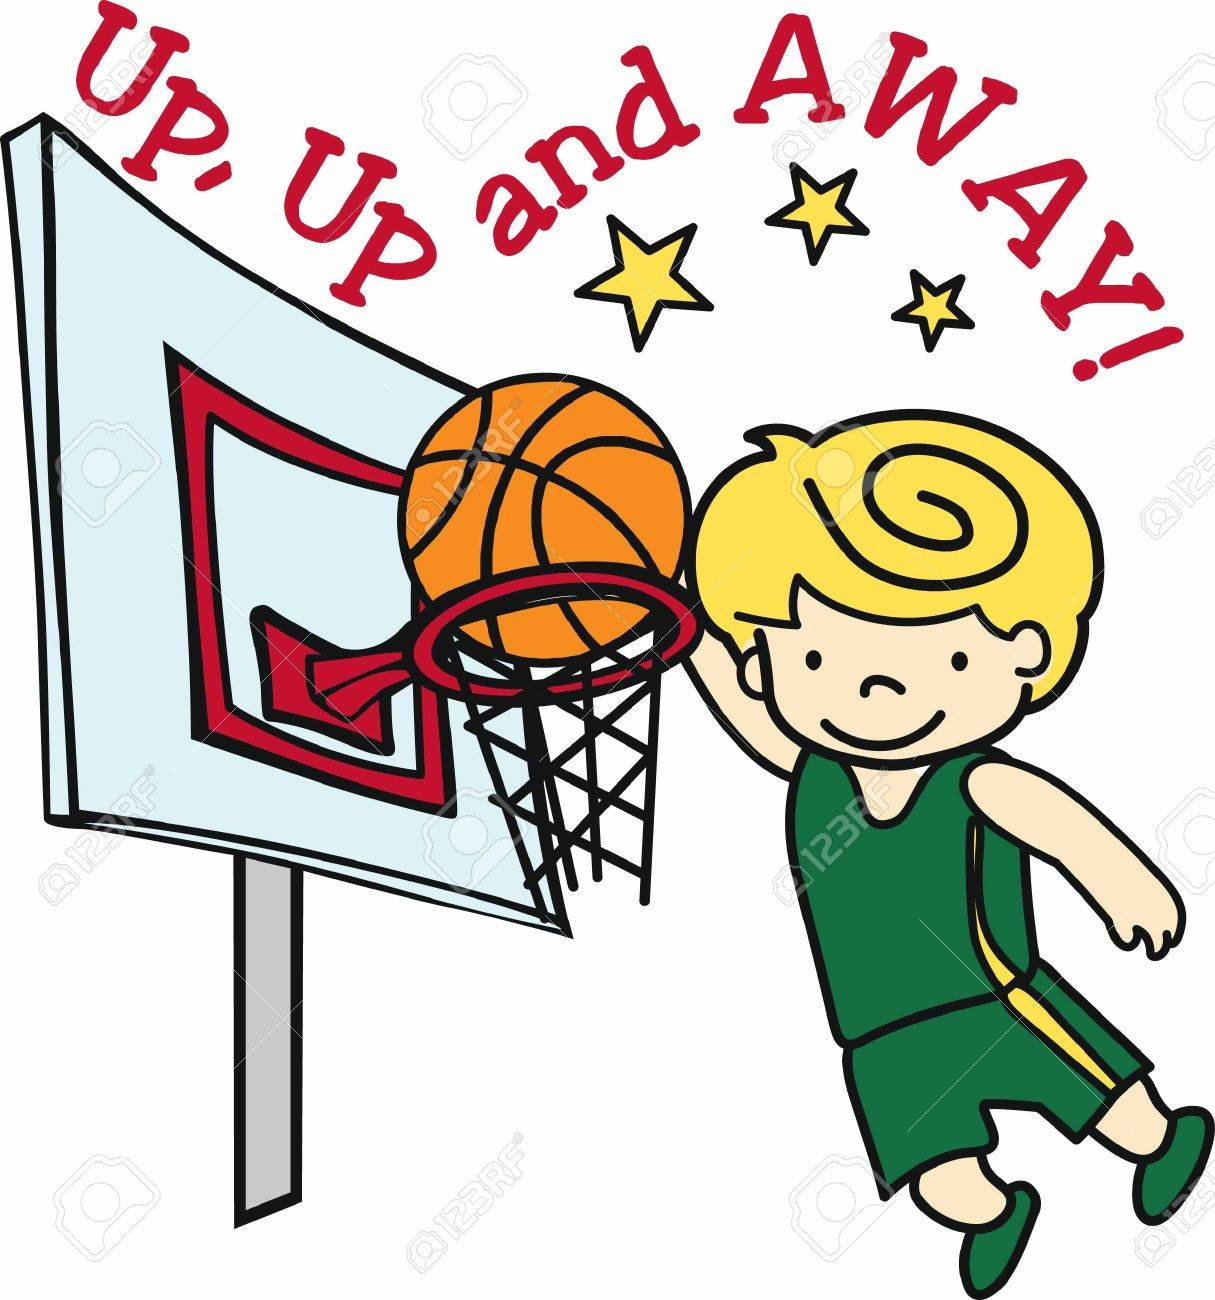 Slam dunk clipart 5 » Clipart Station.